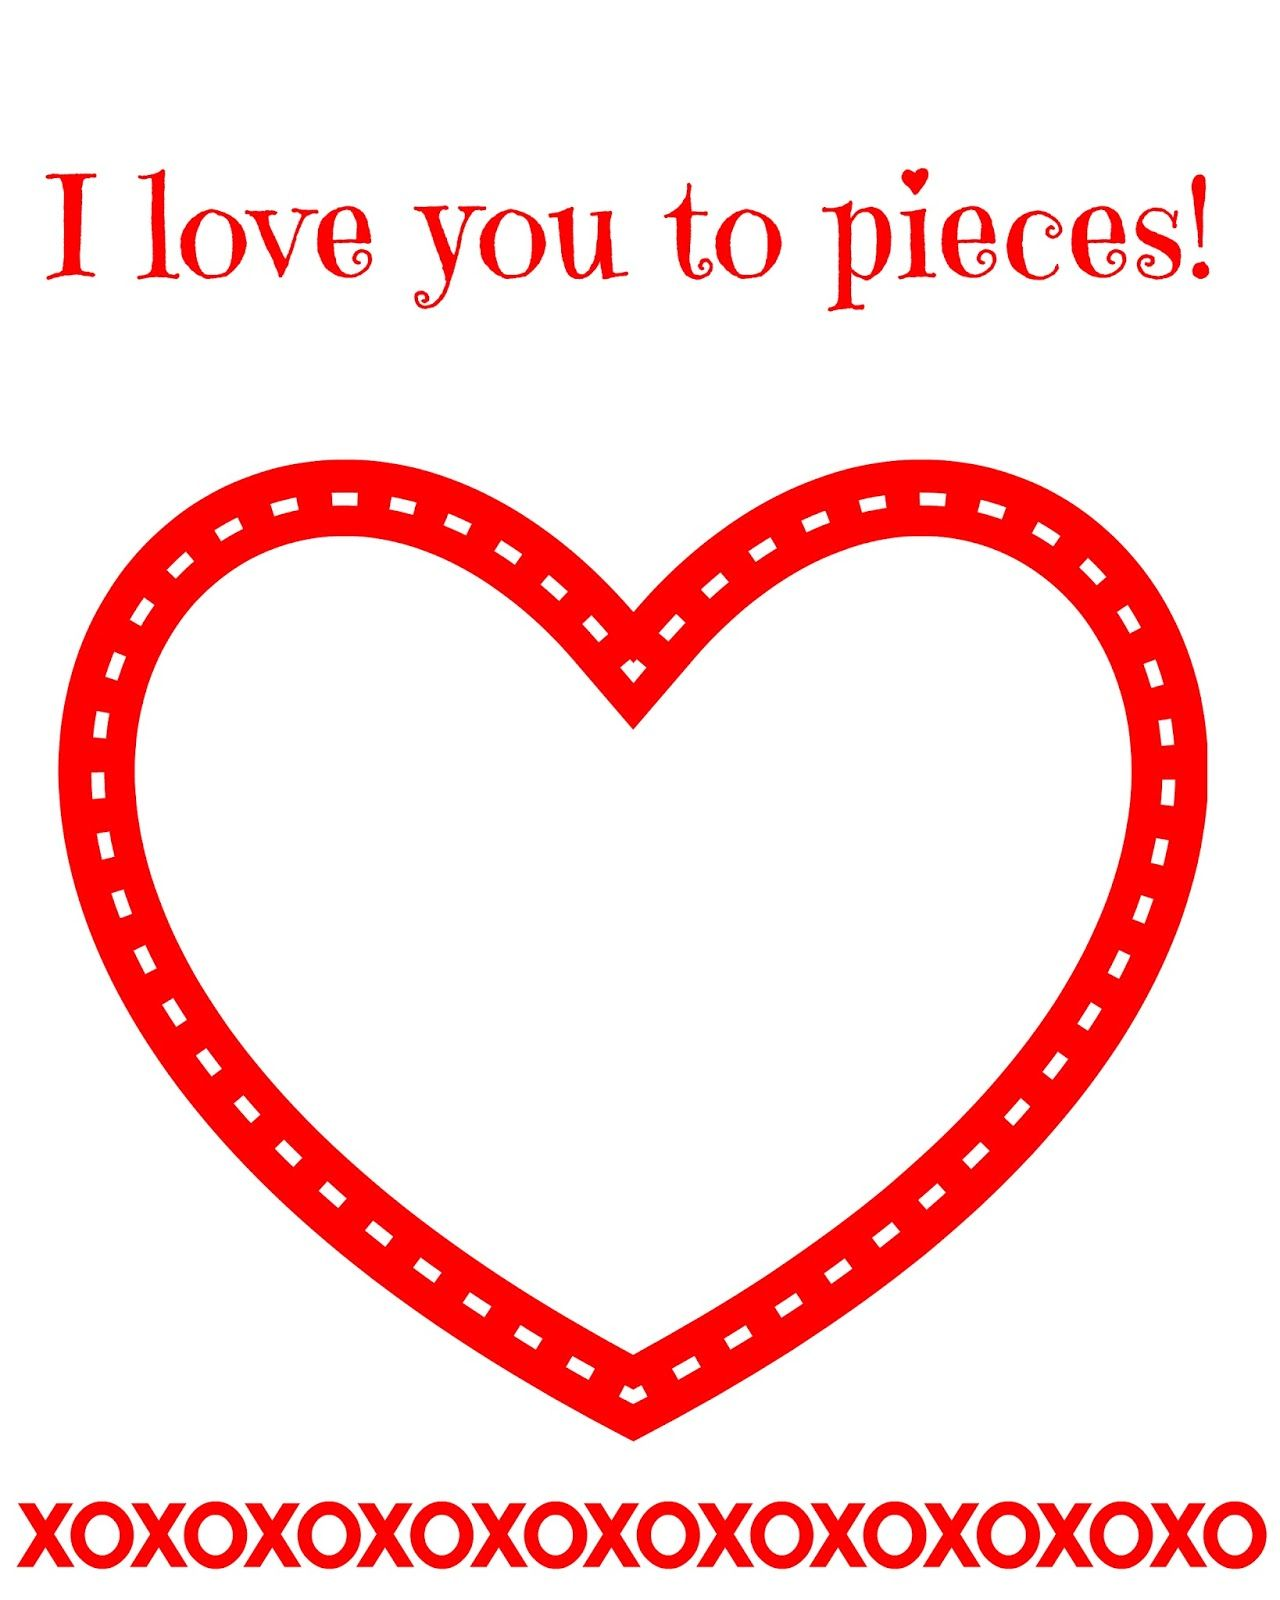 Image Result For I Love You To Pieces